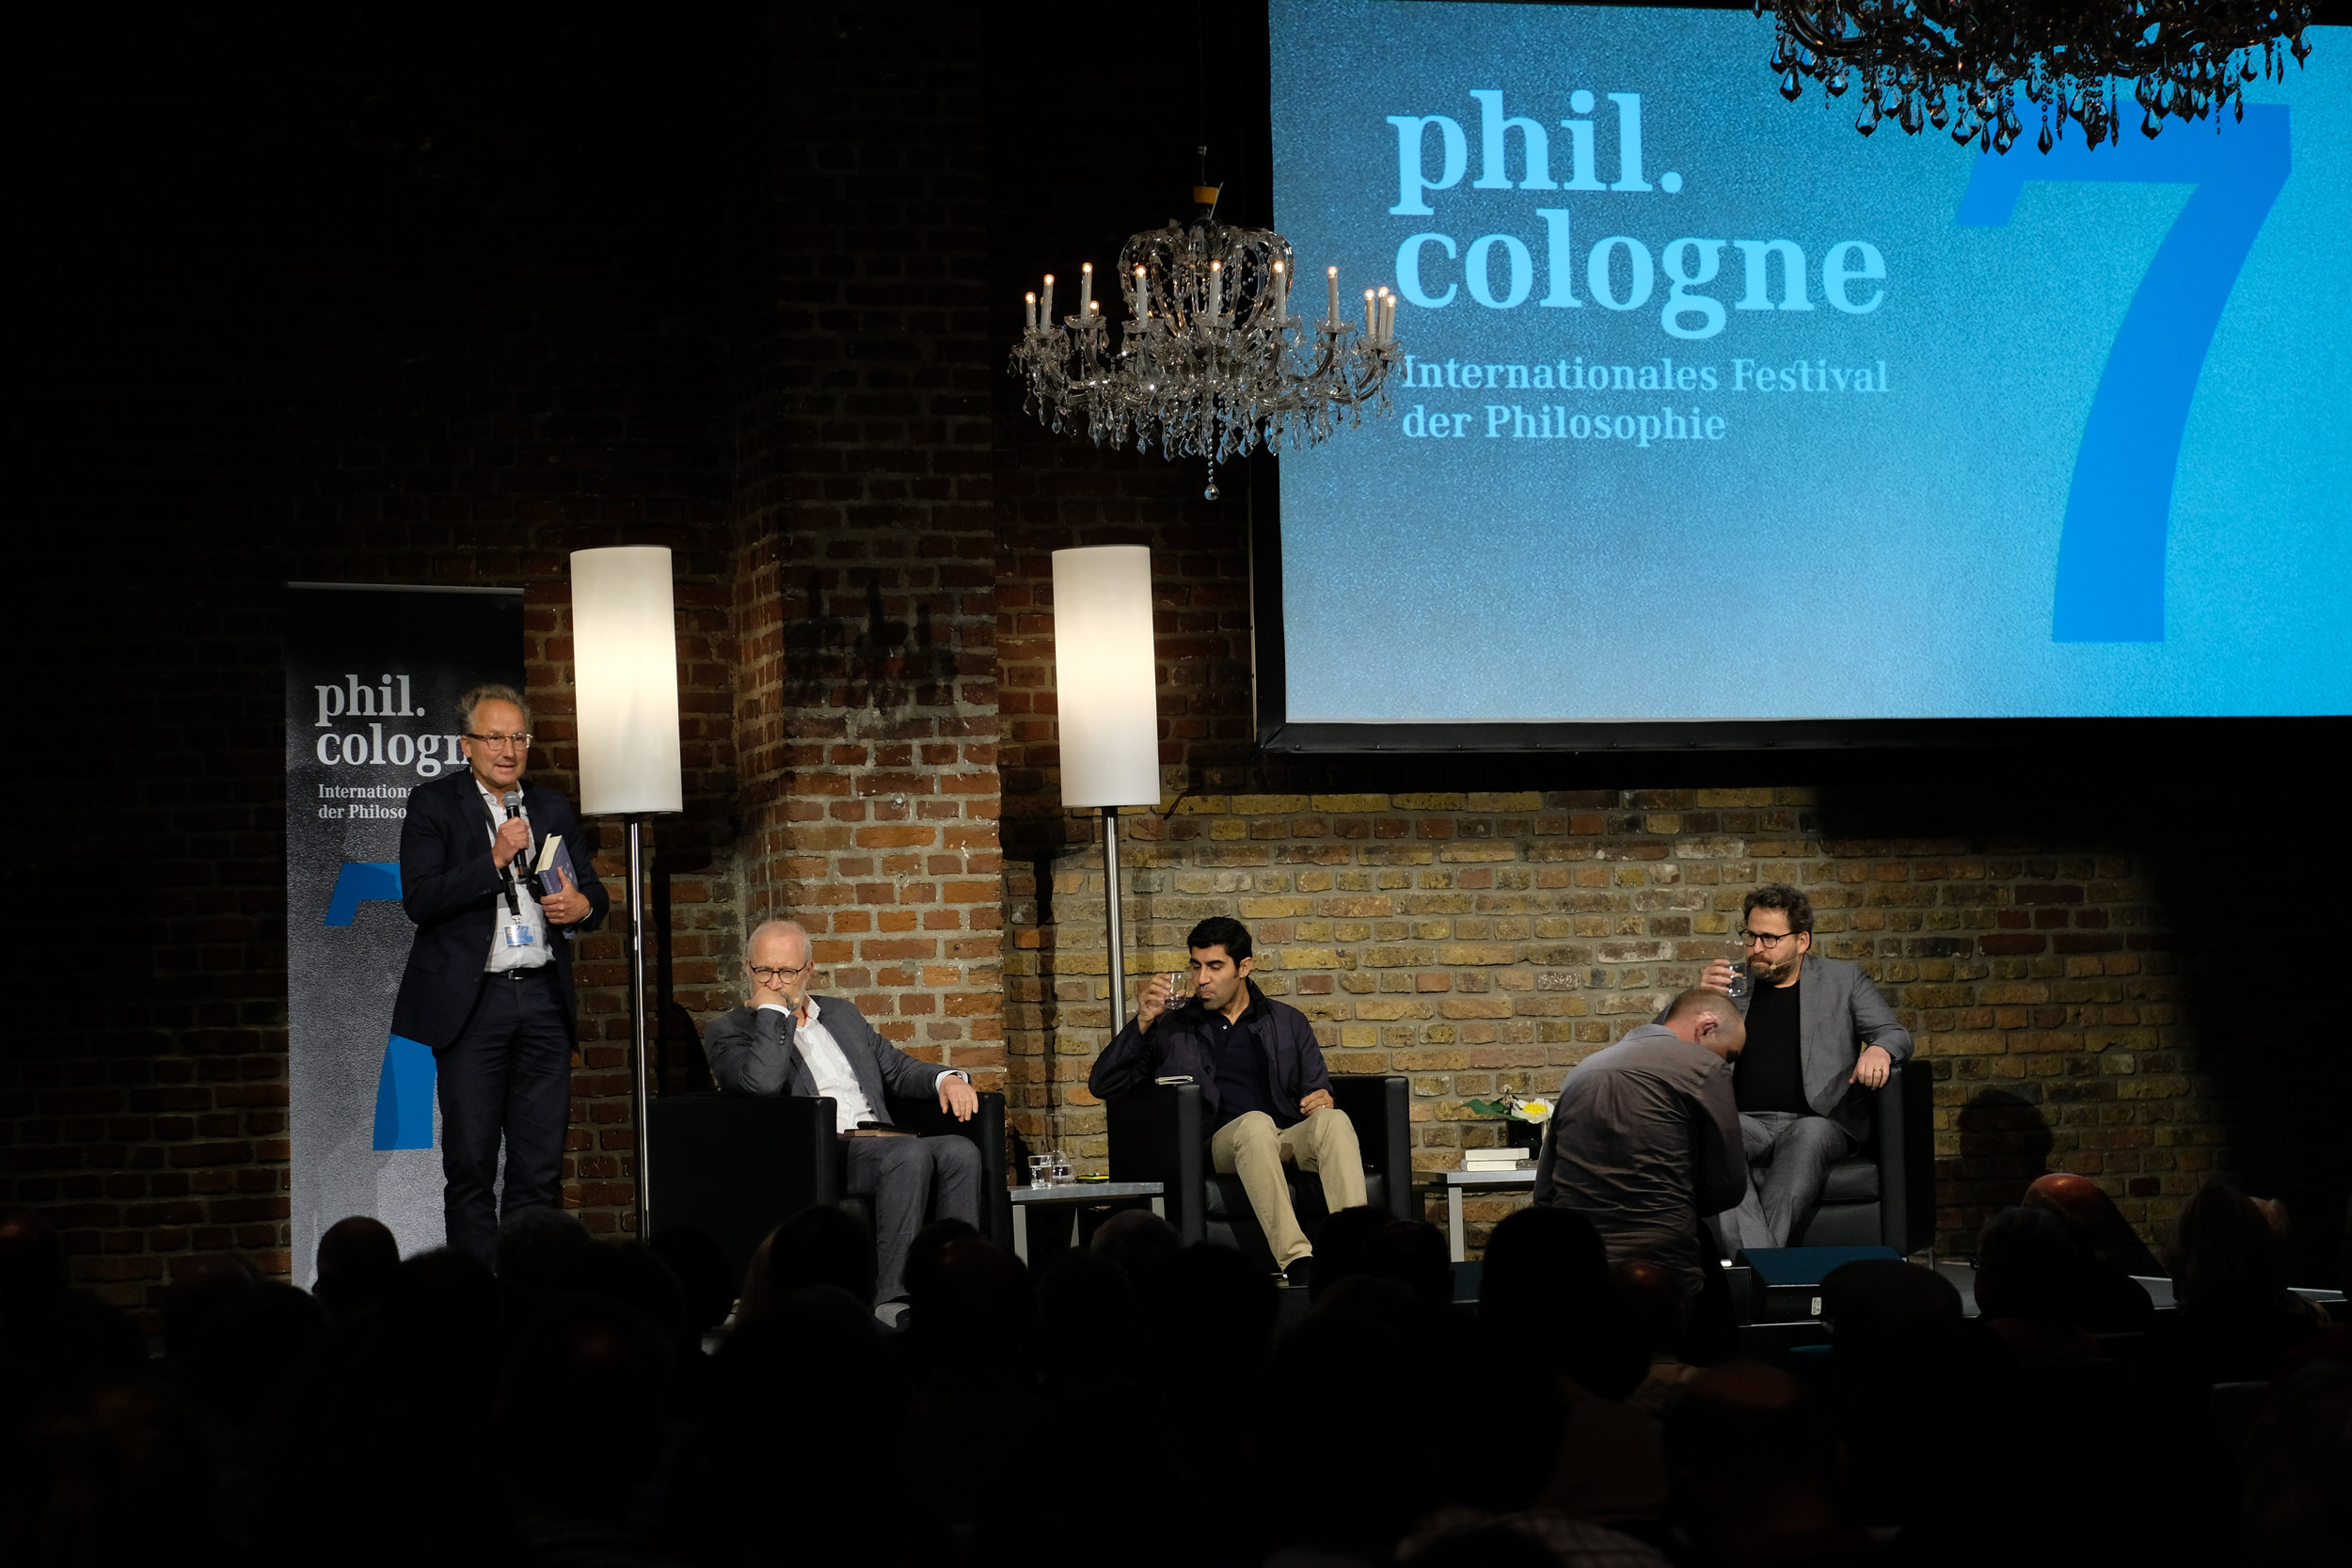 phil.cologne7_01363.jpg